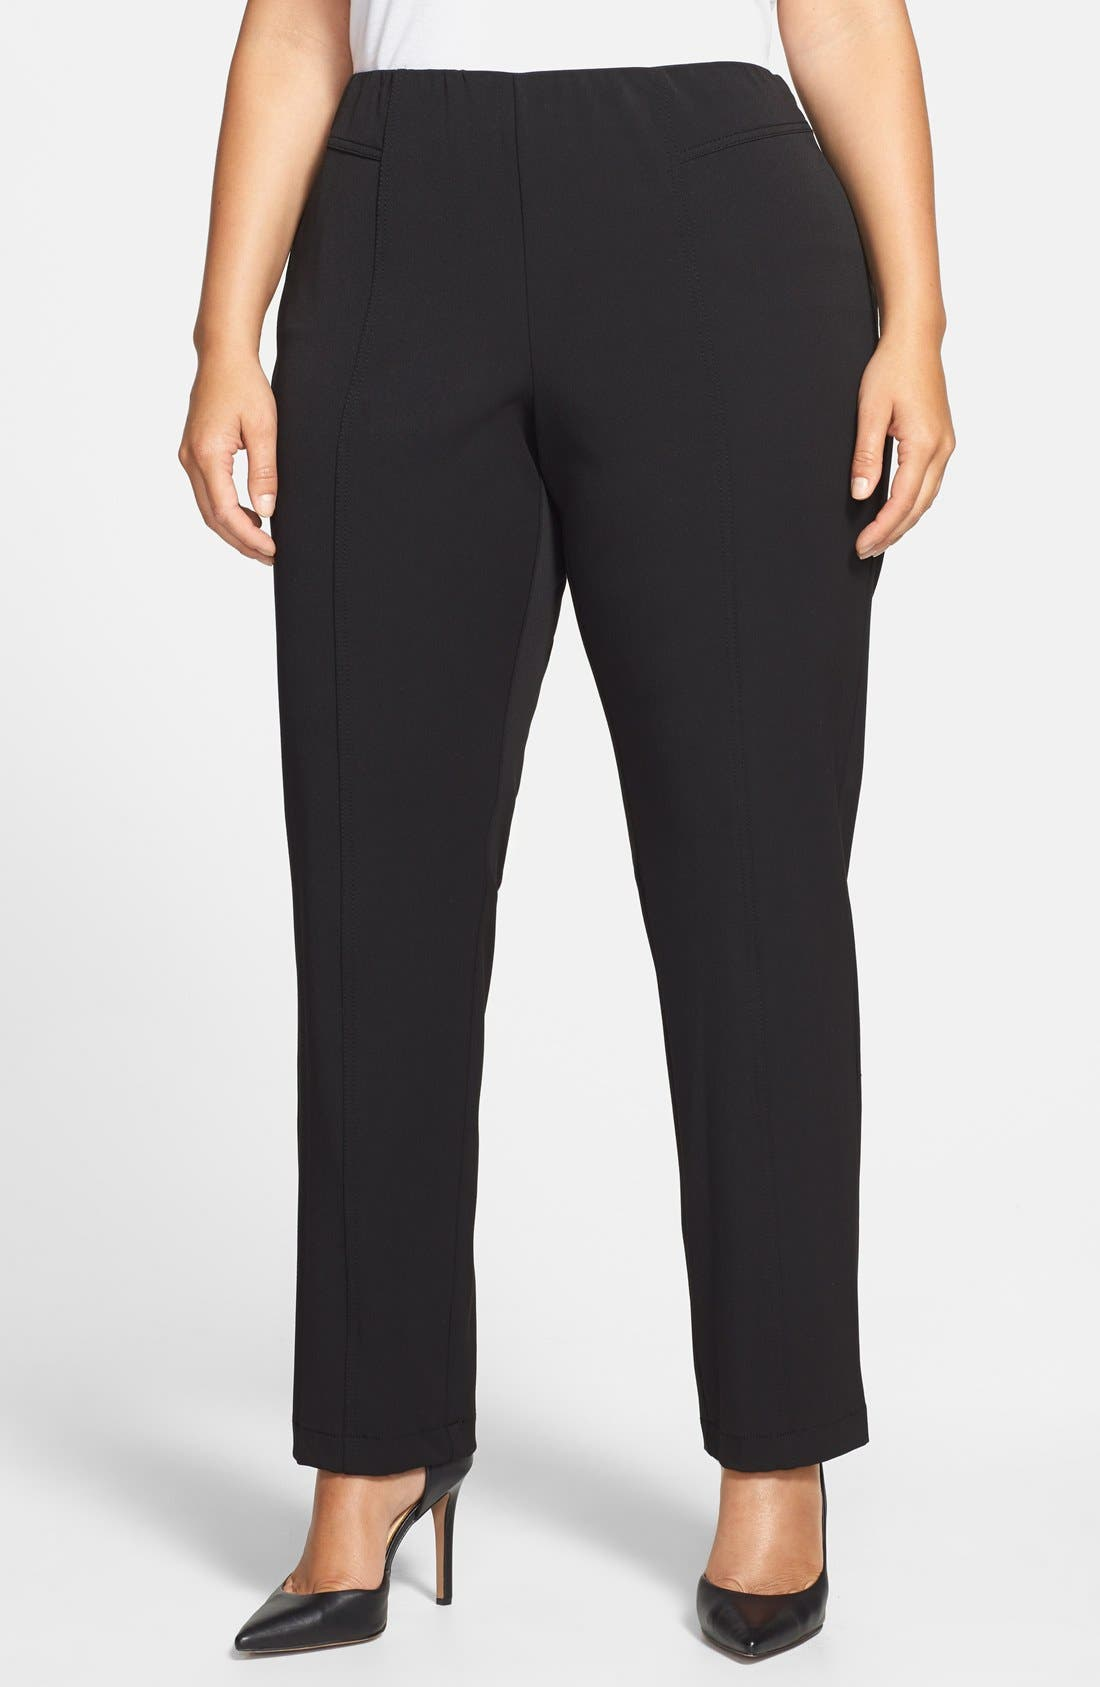 Alternate Image 1 Selected - Vince Camuto Seam Detail Pants (Plus Size)